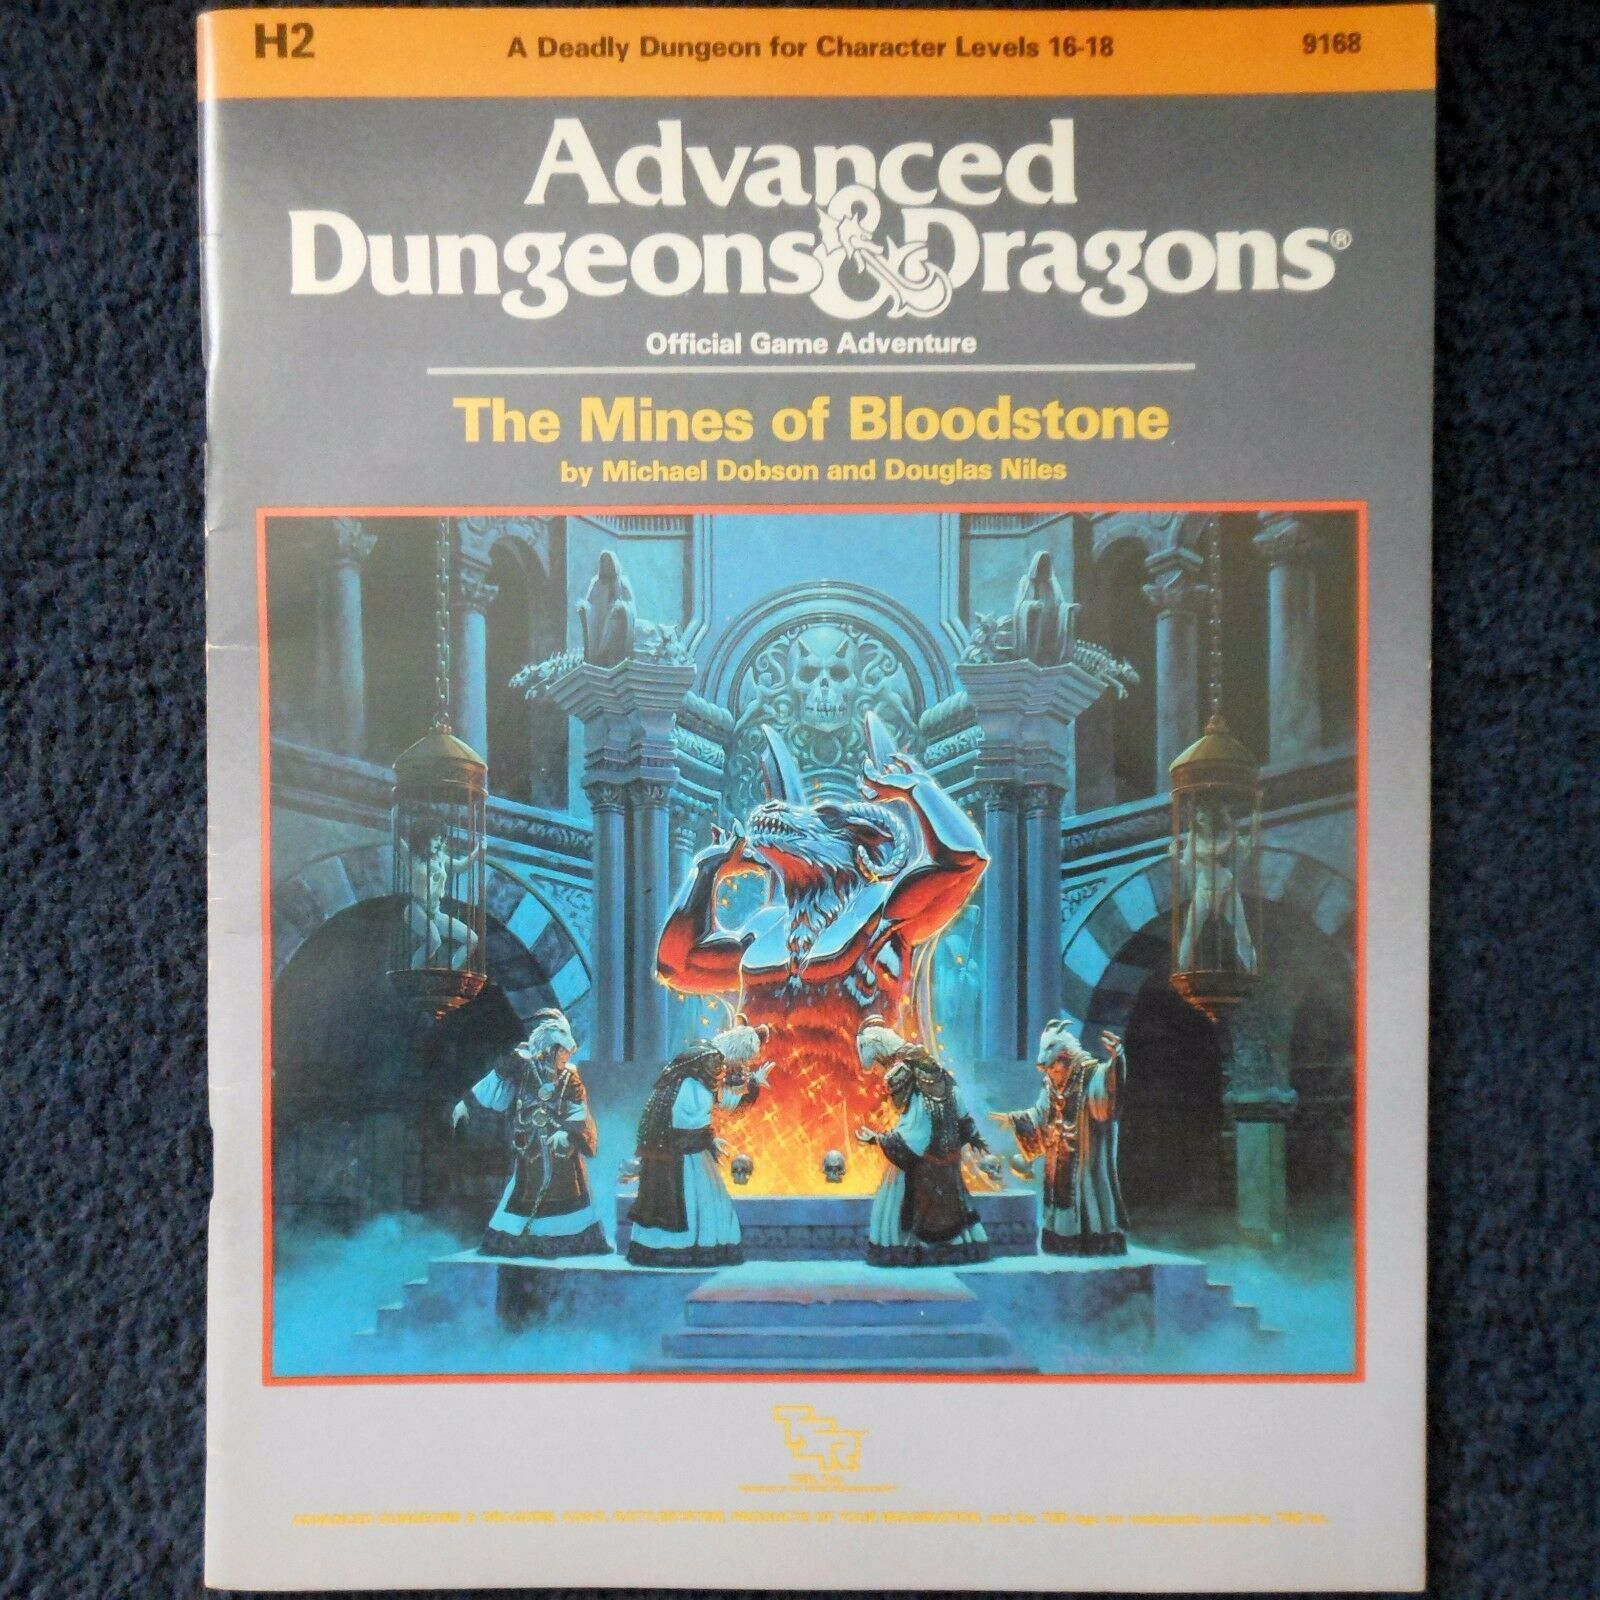 H2 The Mines of Bloodstone Advanced Dungeons & Dragons Adventure Module D&D 9168